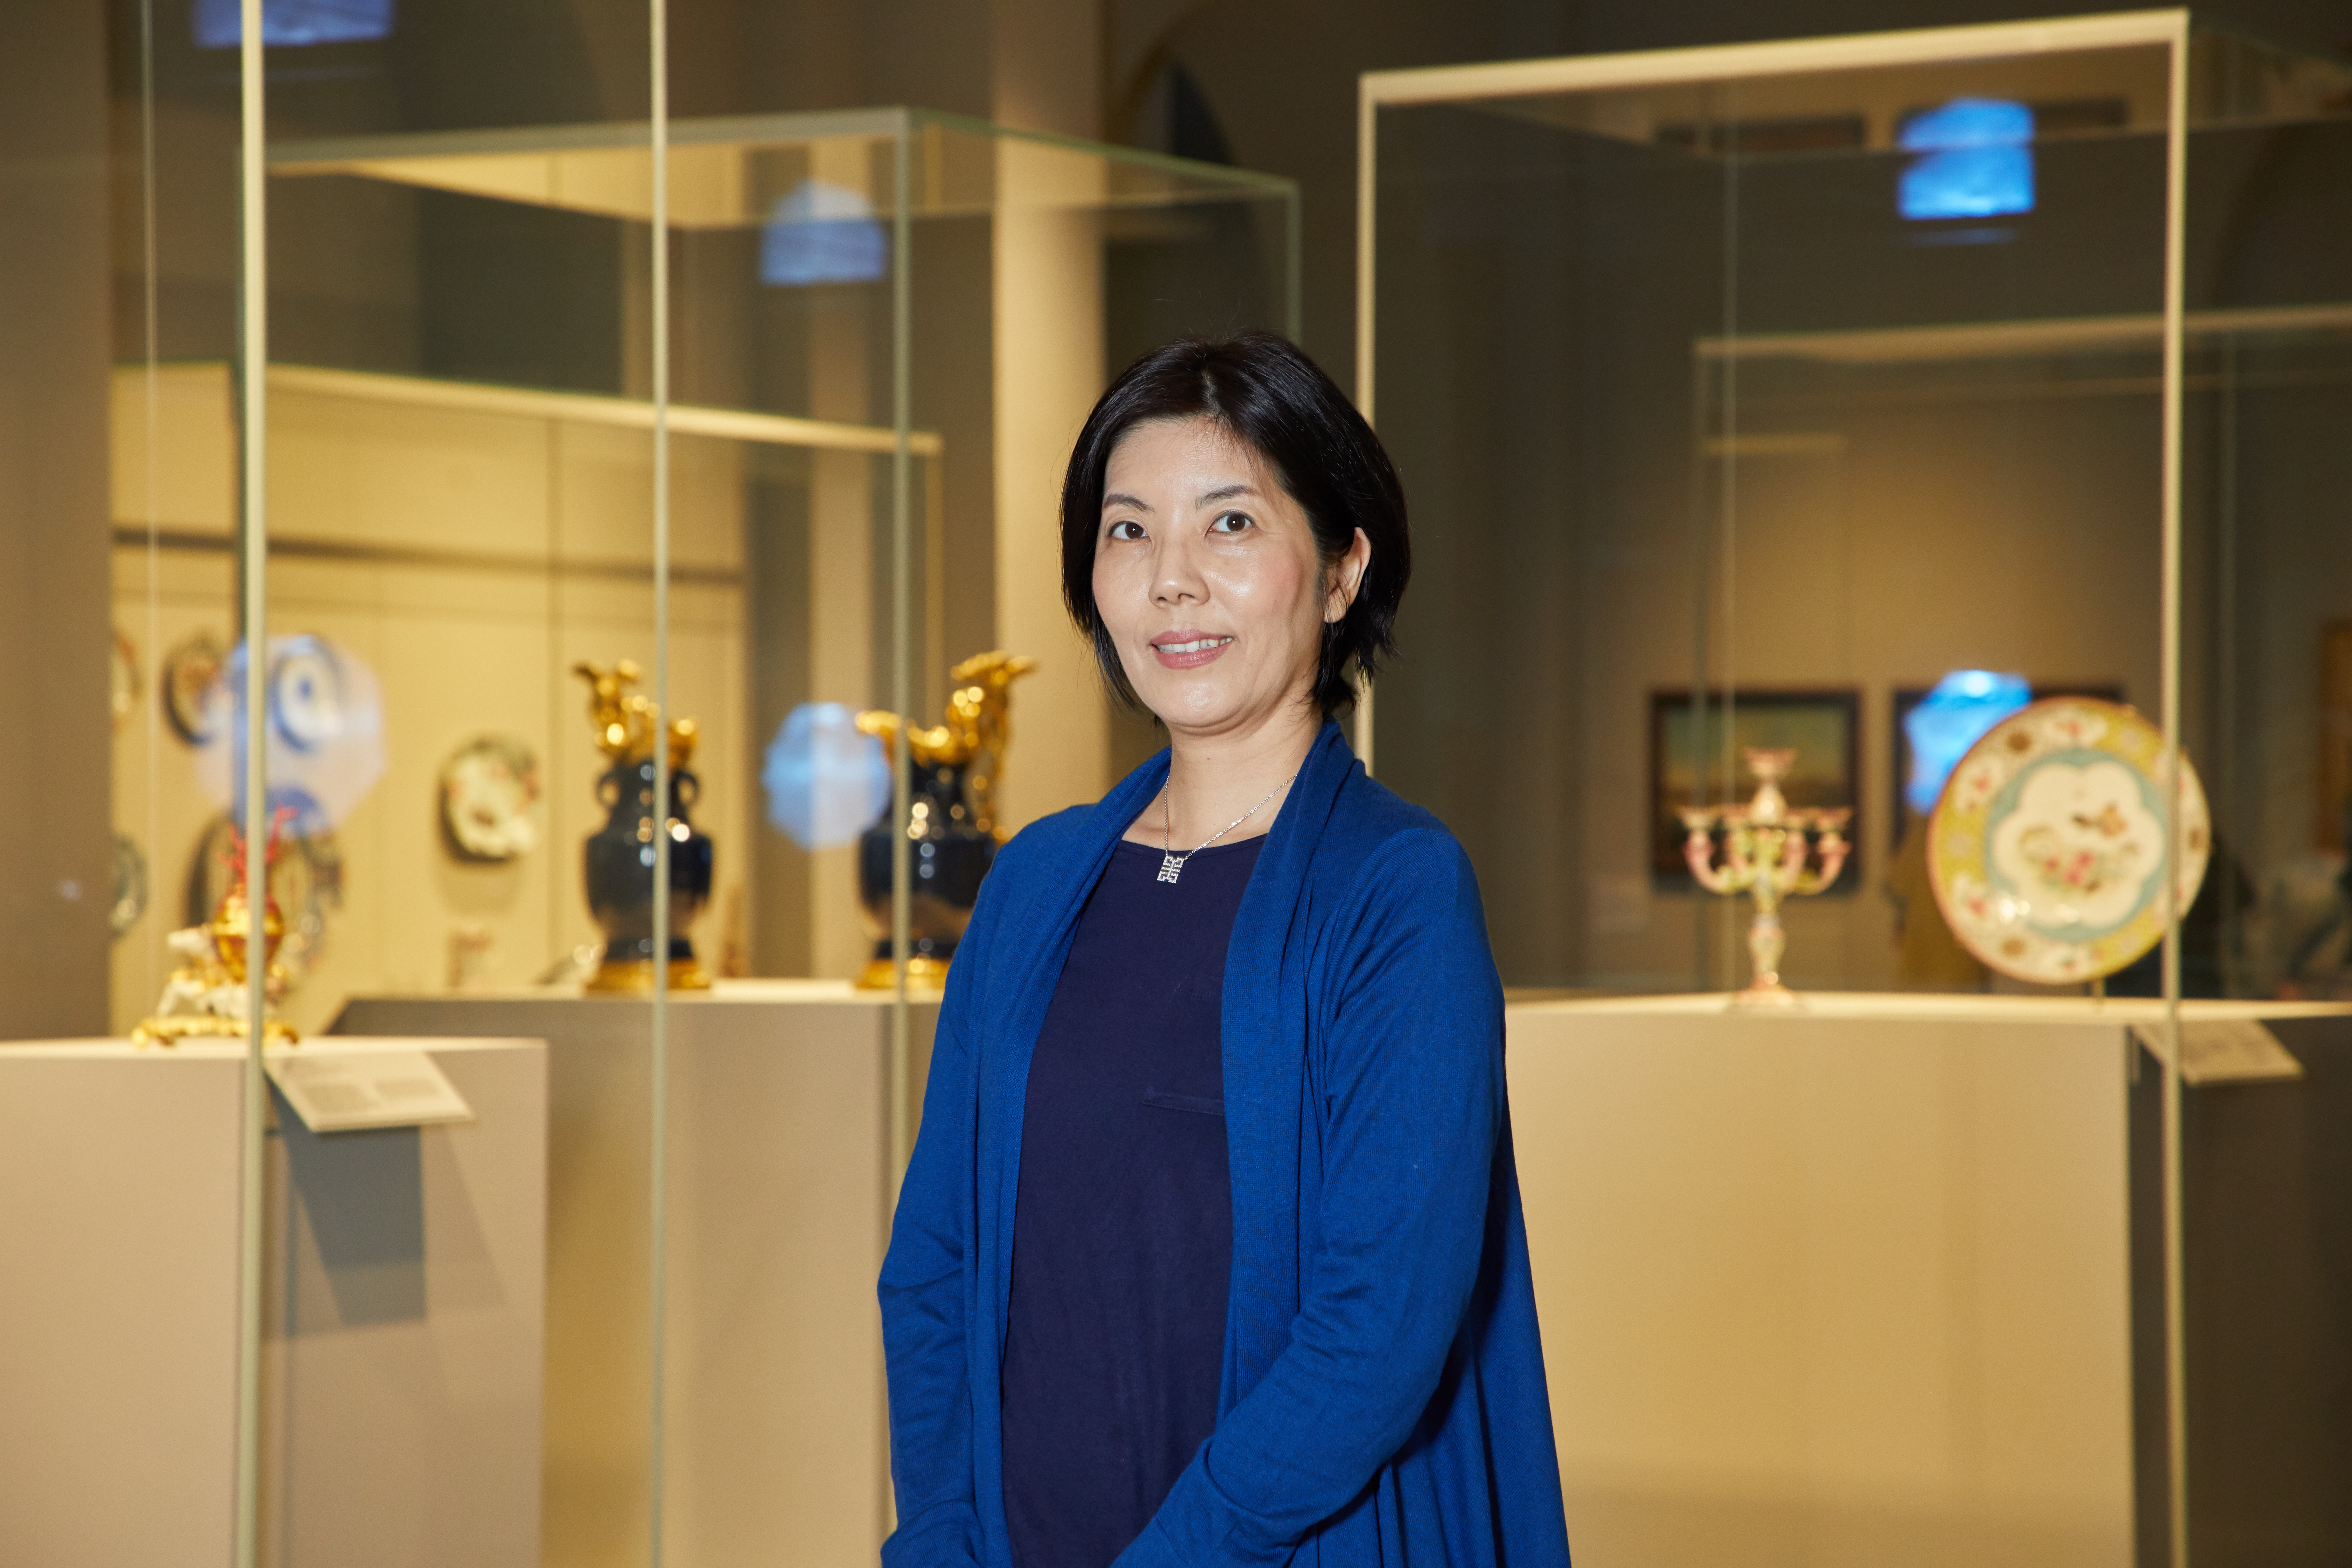 Being a docent has changed Akiko Kato's life.